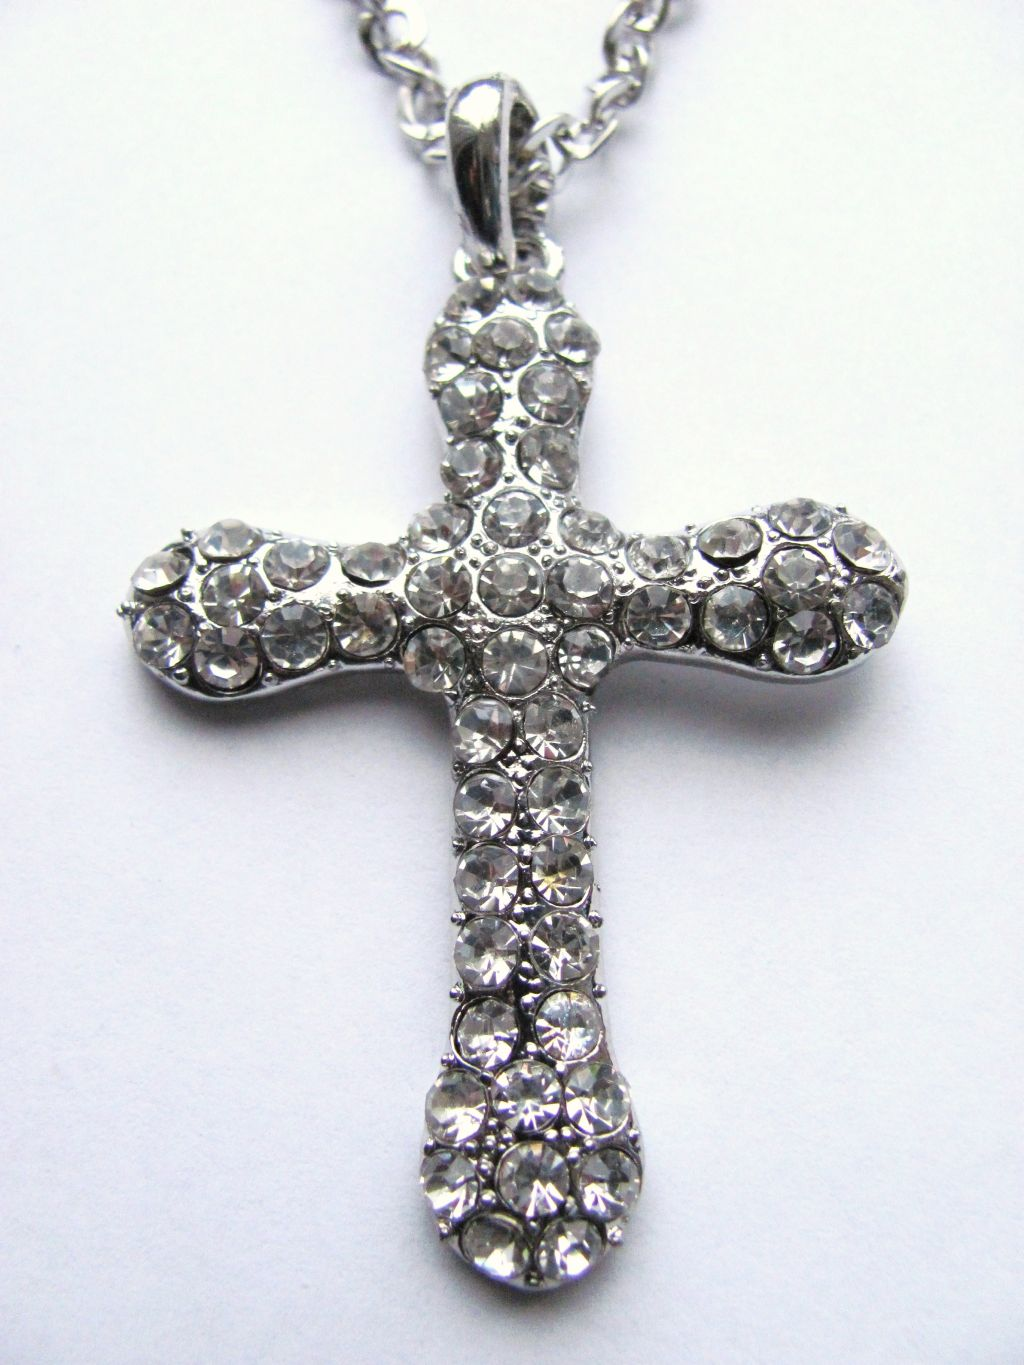 Classic Style Silver Cross Pendant Necklace Genuine Crystals